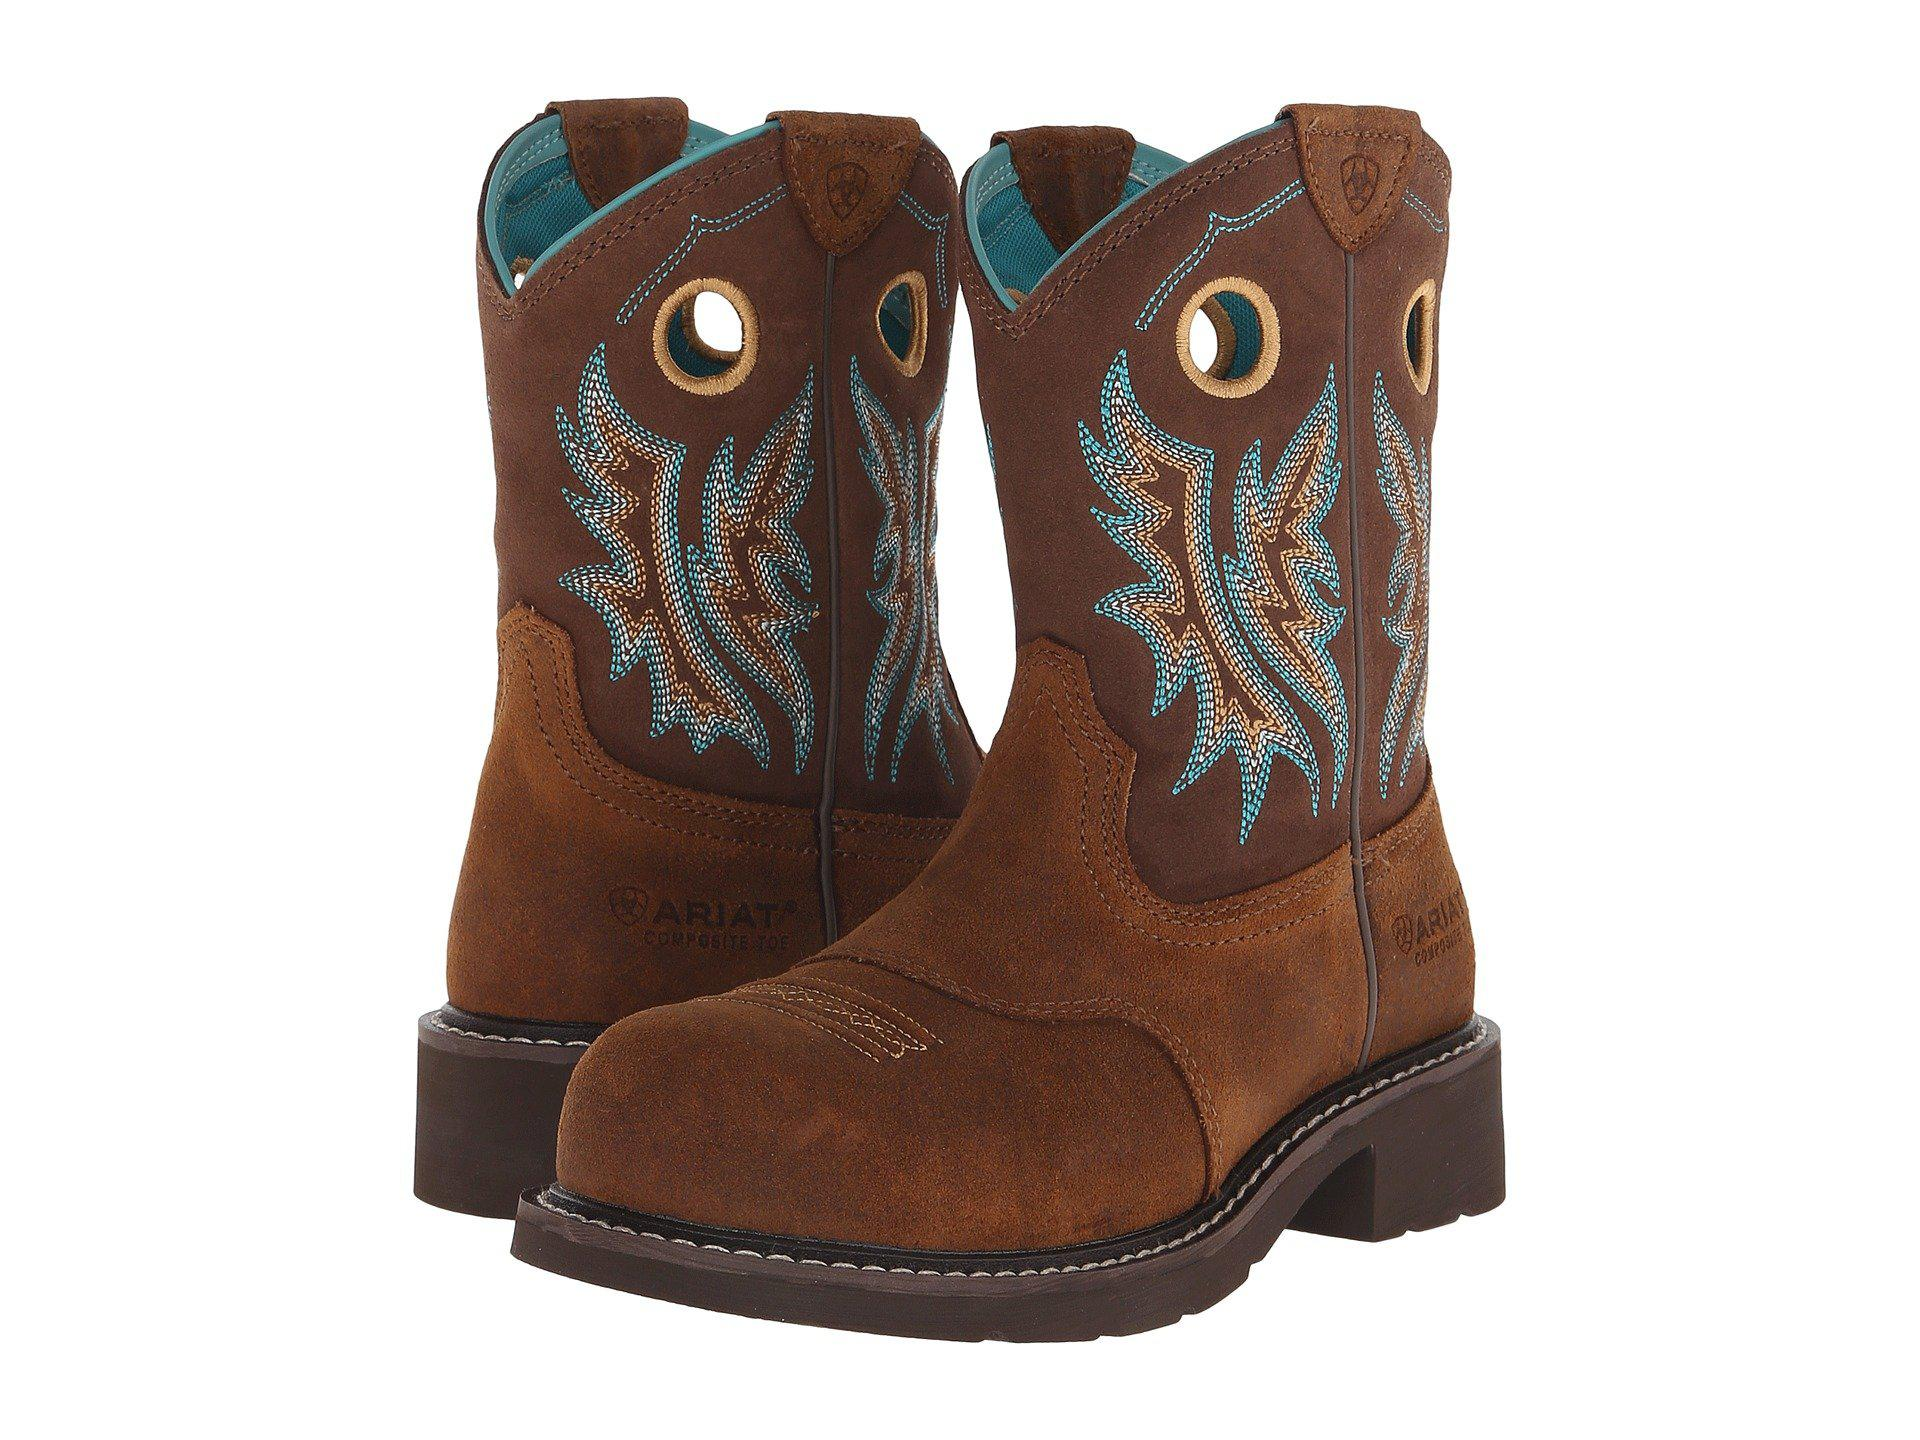 10fb47f0f41 Lyst - Ariat Fatbaby Cowgirl Composite Toe in Brown for Men